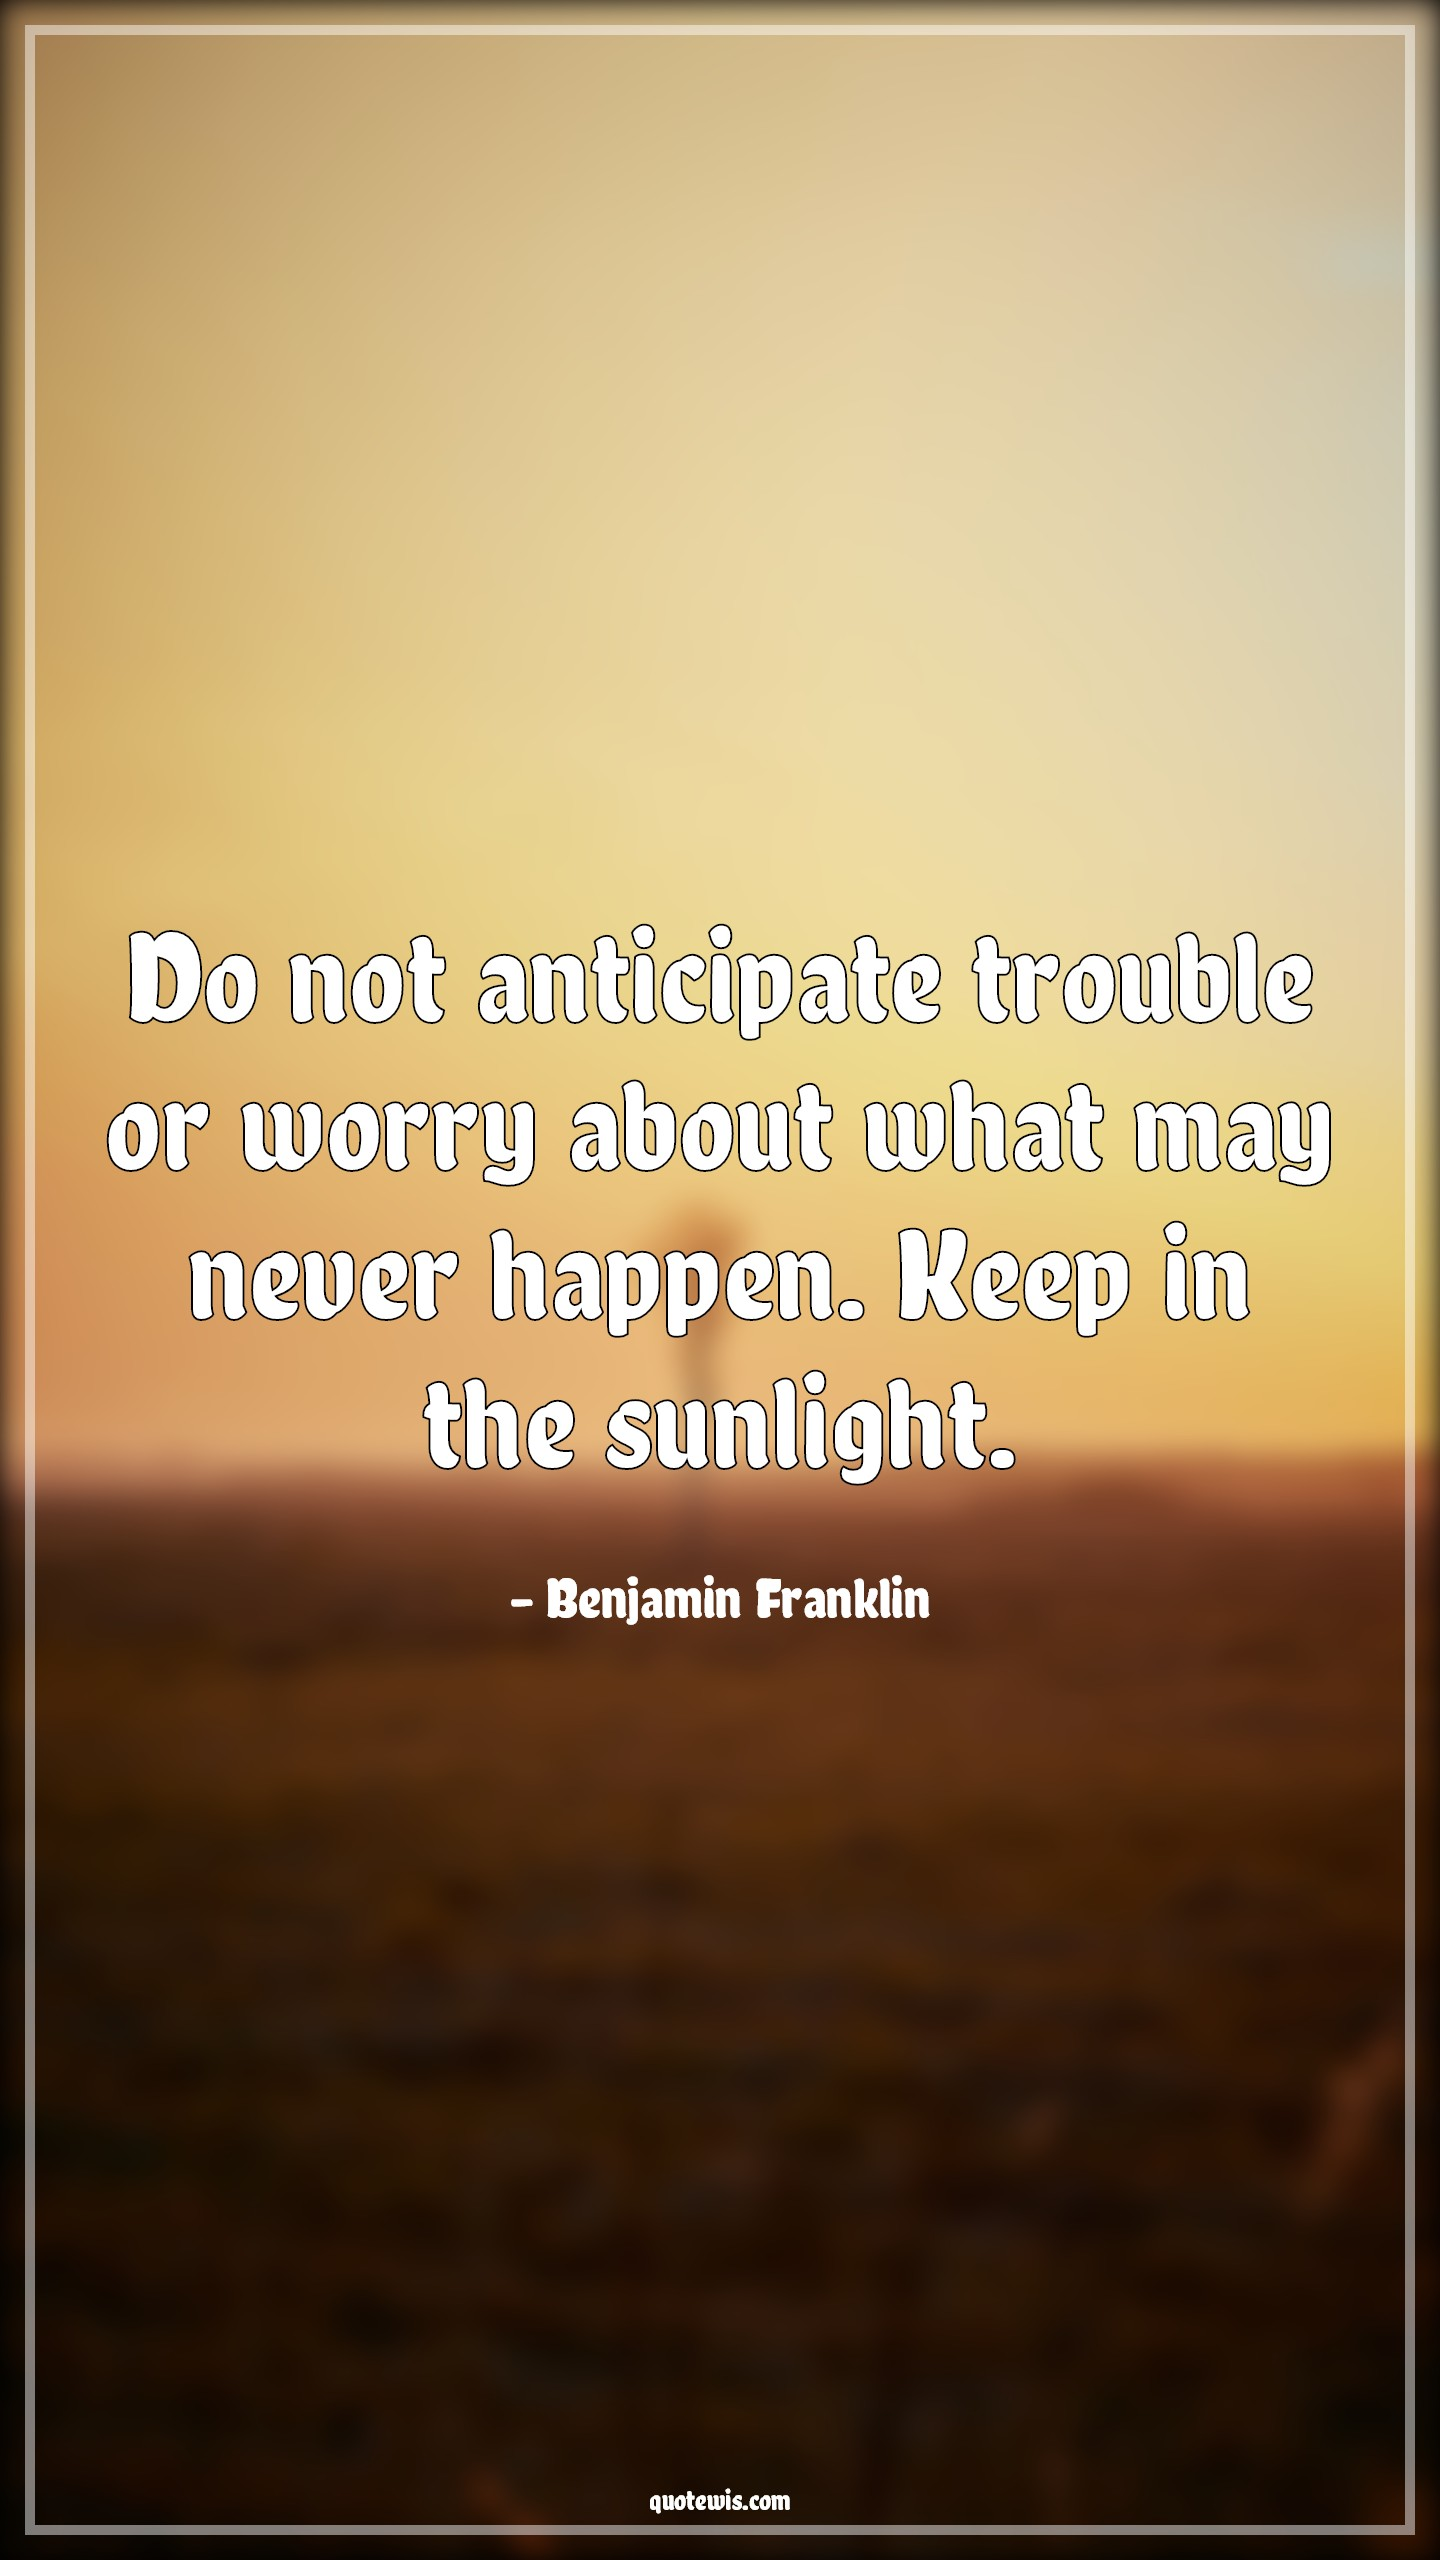 Do not anticipate trouble or worry about what may never happen. Keep in the sunlight.